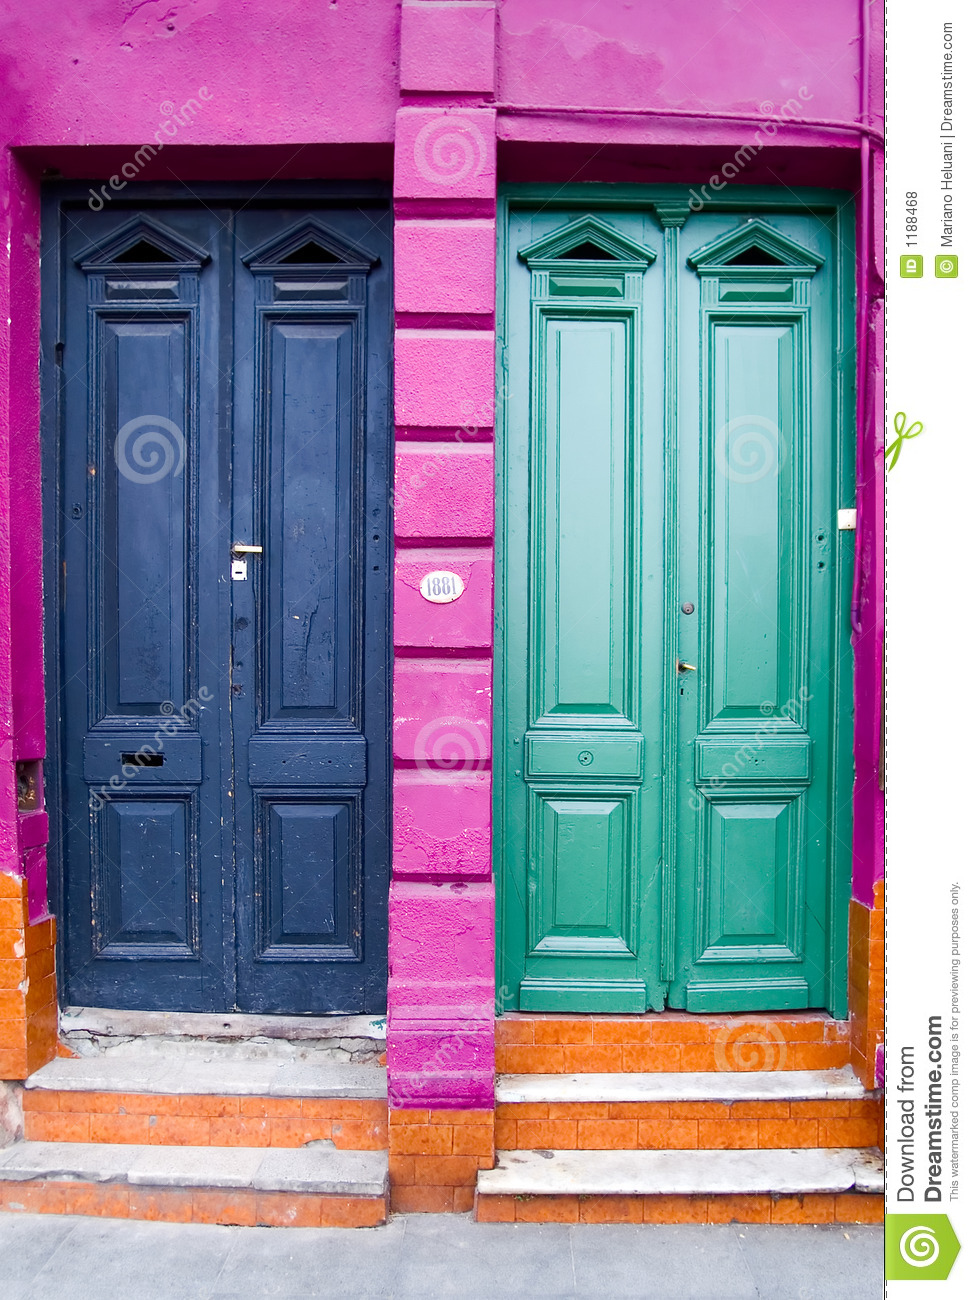 Two Doors And Four Colors Stock Photo Image Of Windows